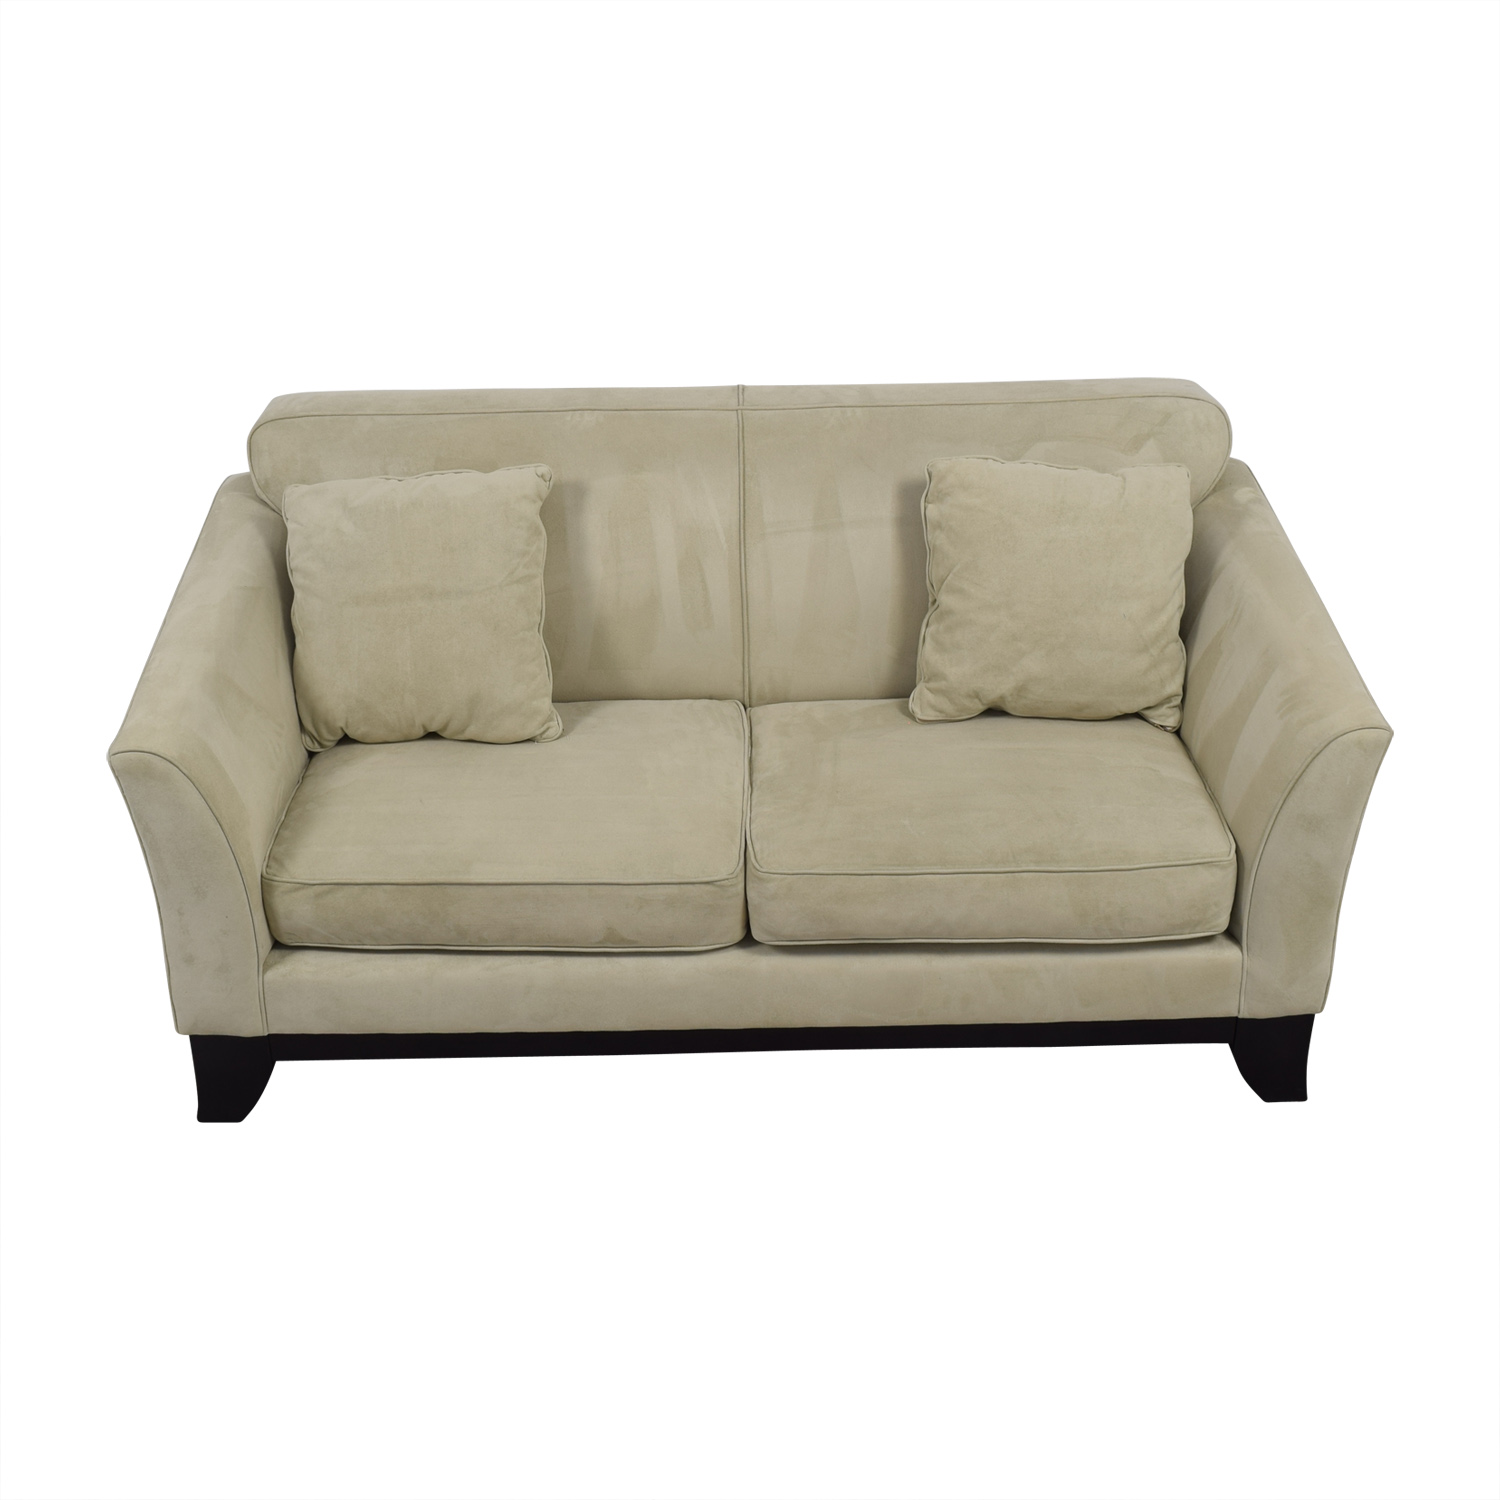 Shop Pottery Barn Greenwich Beige Loveseat Pottery Barn Sofas